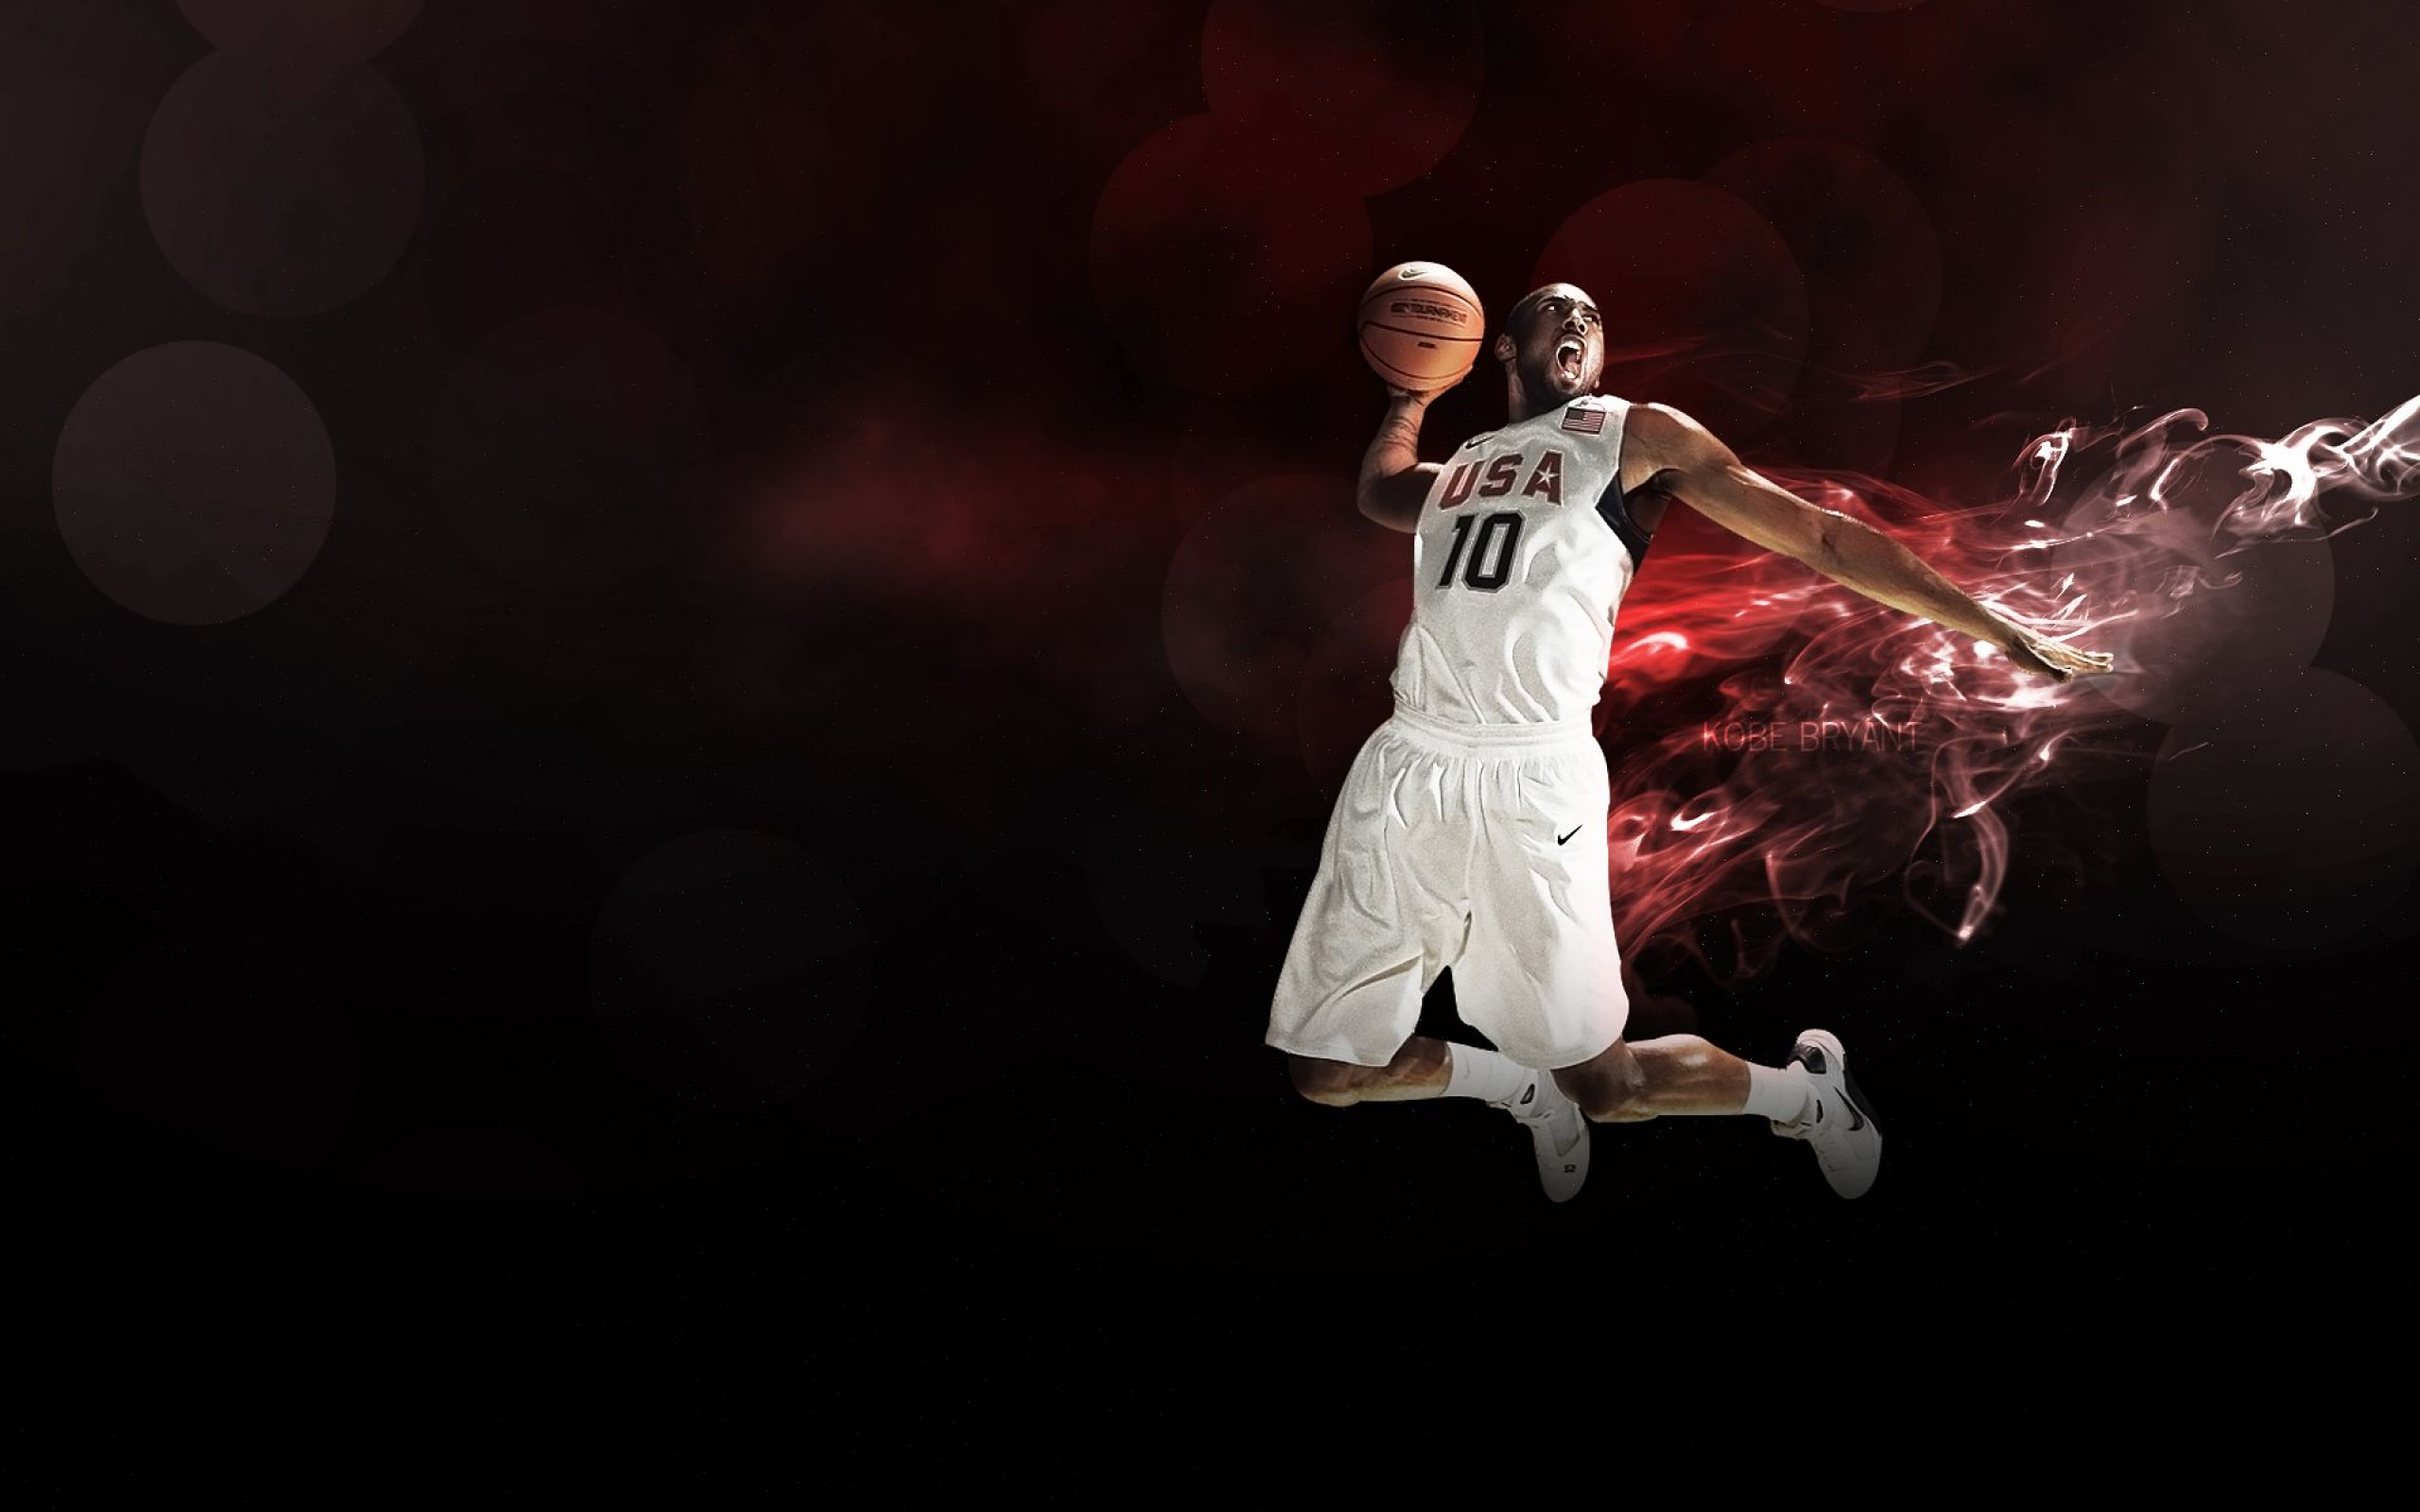 Derrick Rose Wallpaper Quotes Kobe Bryant Wallpapers Hd Collection Pixelstalk Net